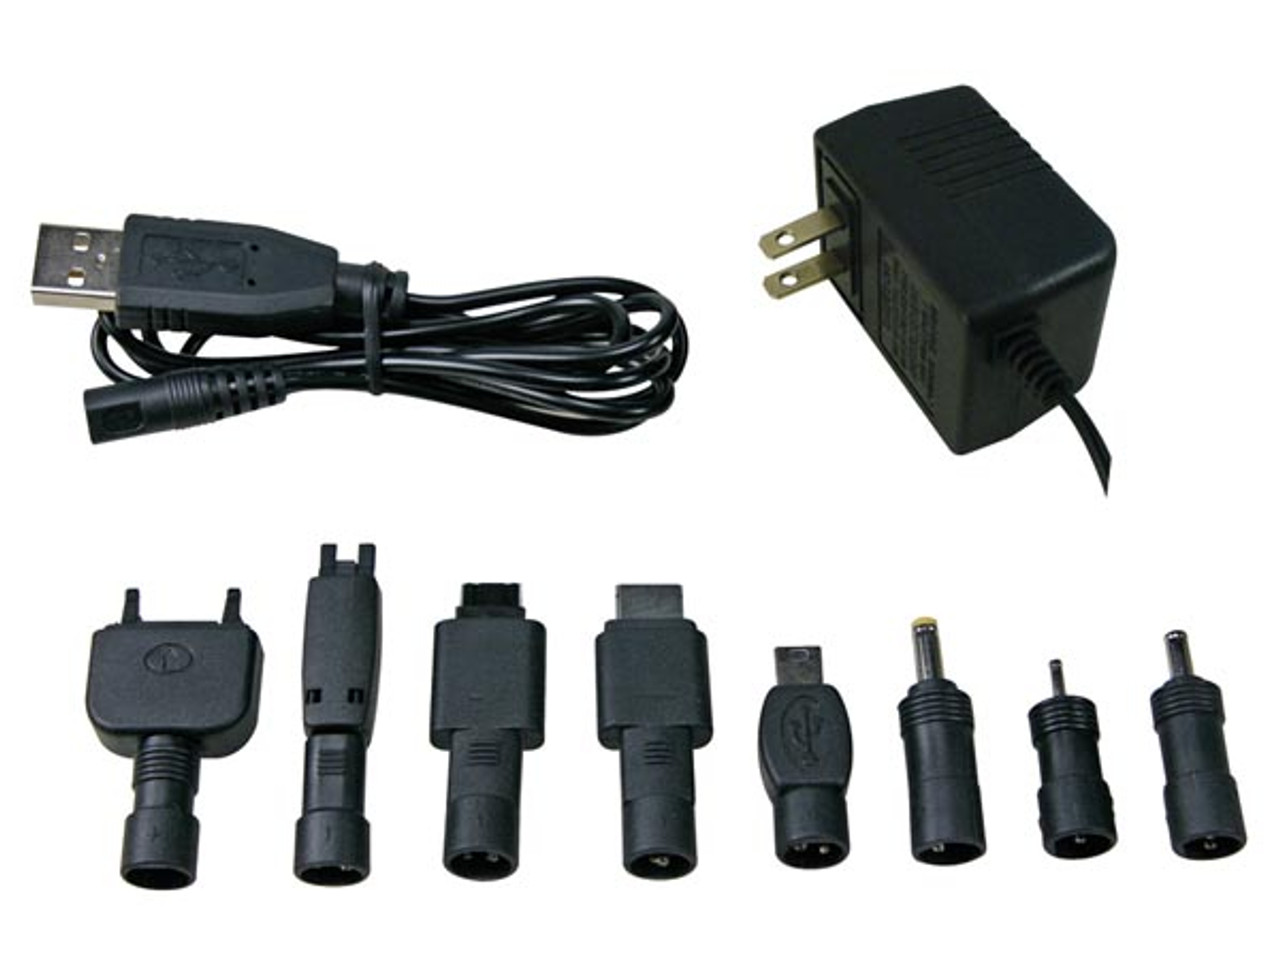 Velleman USB SWITCHING POWER ADAPTER - 5VDC / 1A